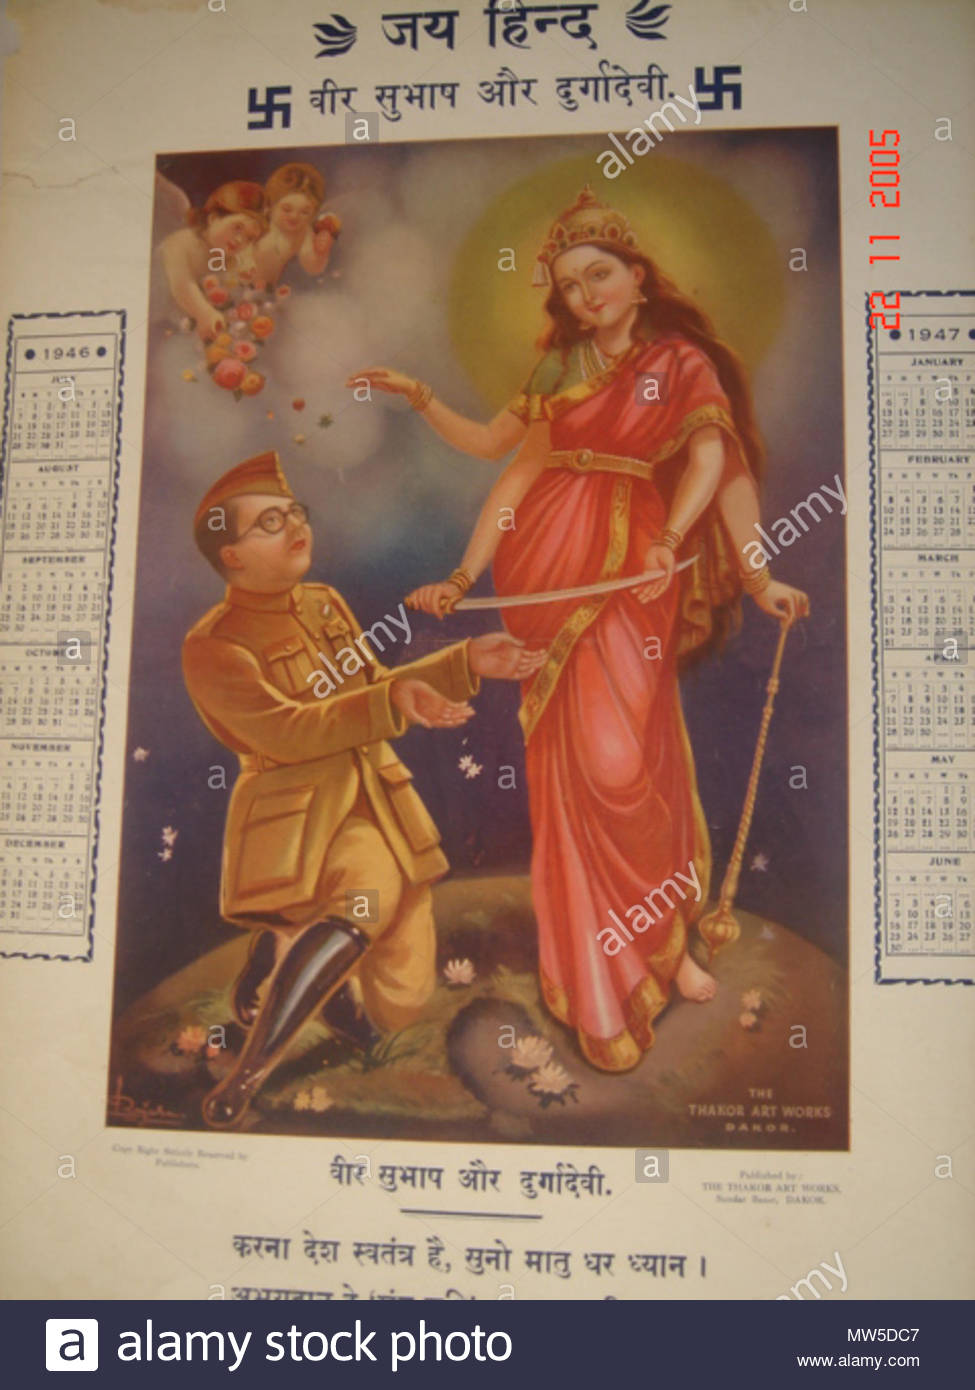 . English: Calendar art memorializing Netaji, 1946-47: he is given a sword by Durga, and then attacks: 'Chalo Dilli!' Source: ebay, Dec. 2006 . between 1946 and 1947. Unknown 108 Calendar art memorializing Netaji, 1946-47 - Stock Image